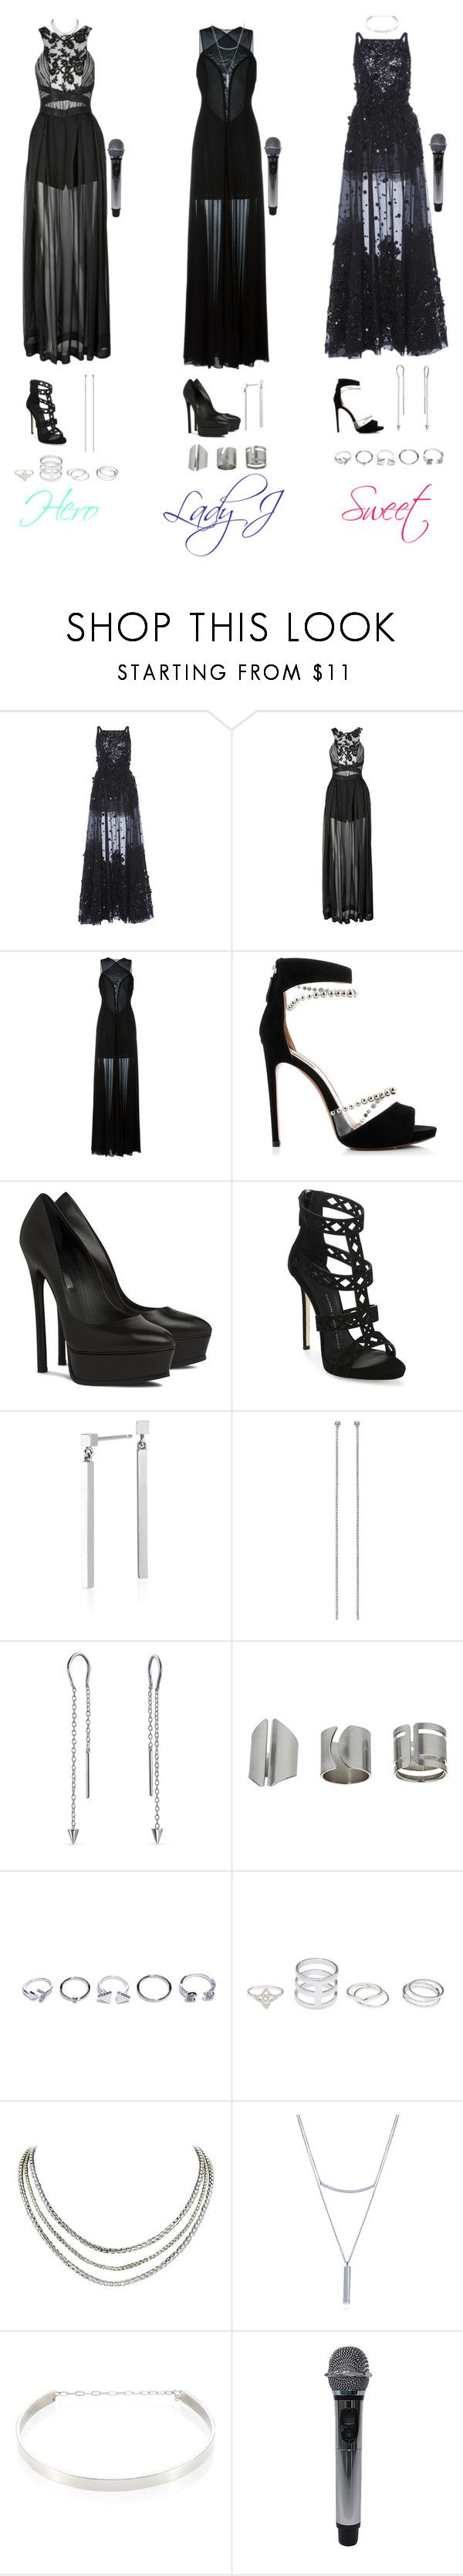 """HotQueens - All Night / Performance"" by junnie-poet ❤ liked on Polyvore featuring Elie Saab, Three Floor, Jay Ahr, Alaïa, Casadei, Giuseppe Zanotti, Blue Nile, Bling Jewelry, Topshop and GUESS"